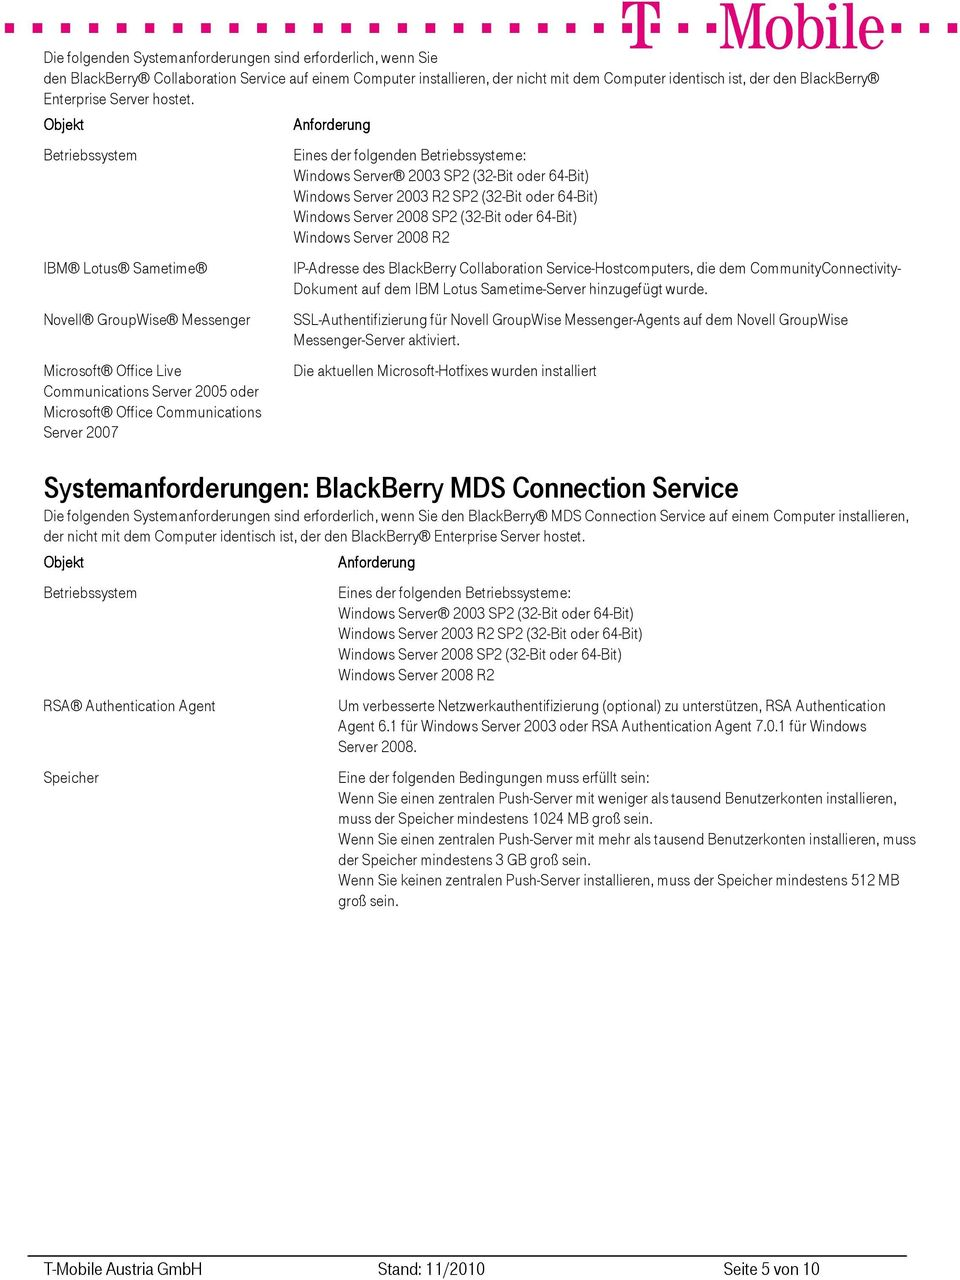 Eines der folgenden e: IBM Lotus Sametime Novell GroupWise Messenger Microsoft Office Live Communications Server 2005 oder Microsoft Office Communications Server 2007 IP-Adresse des BlackBerry